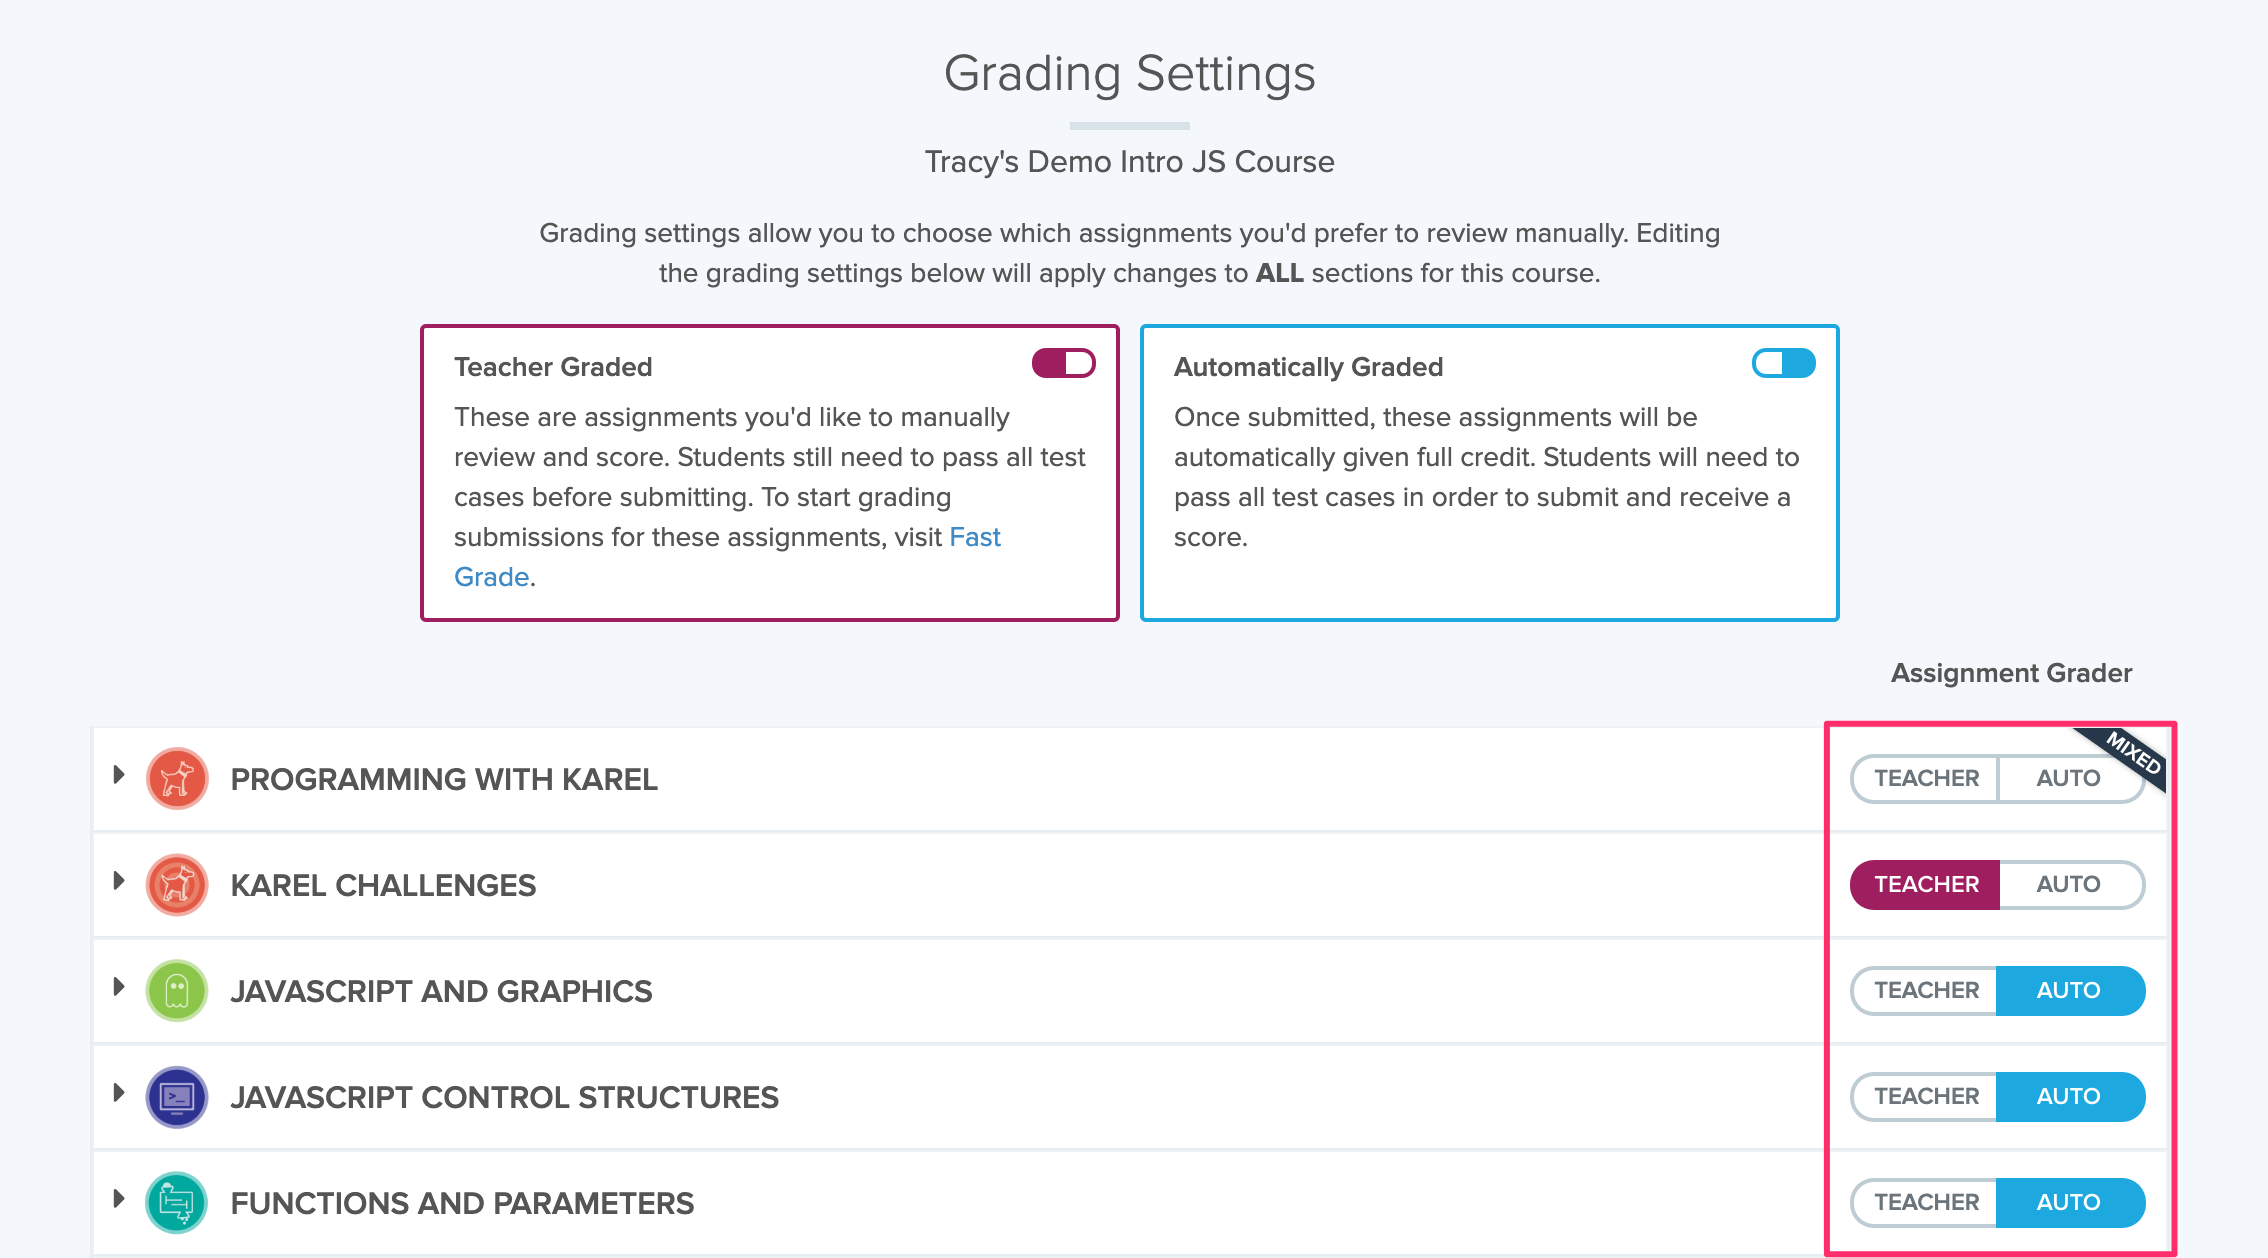 Image showing Grading Settings